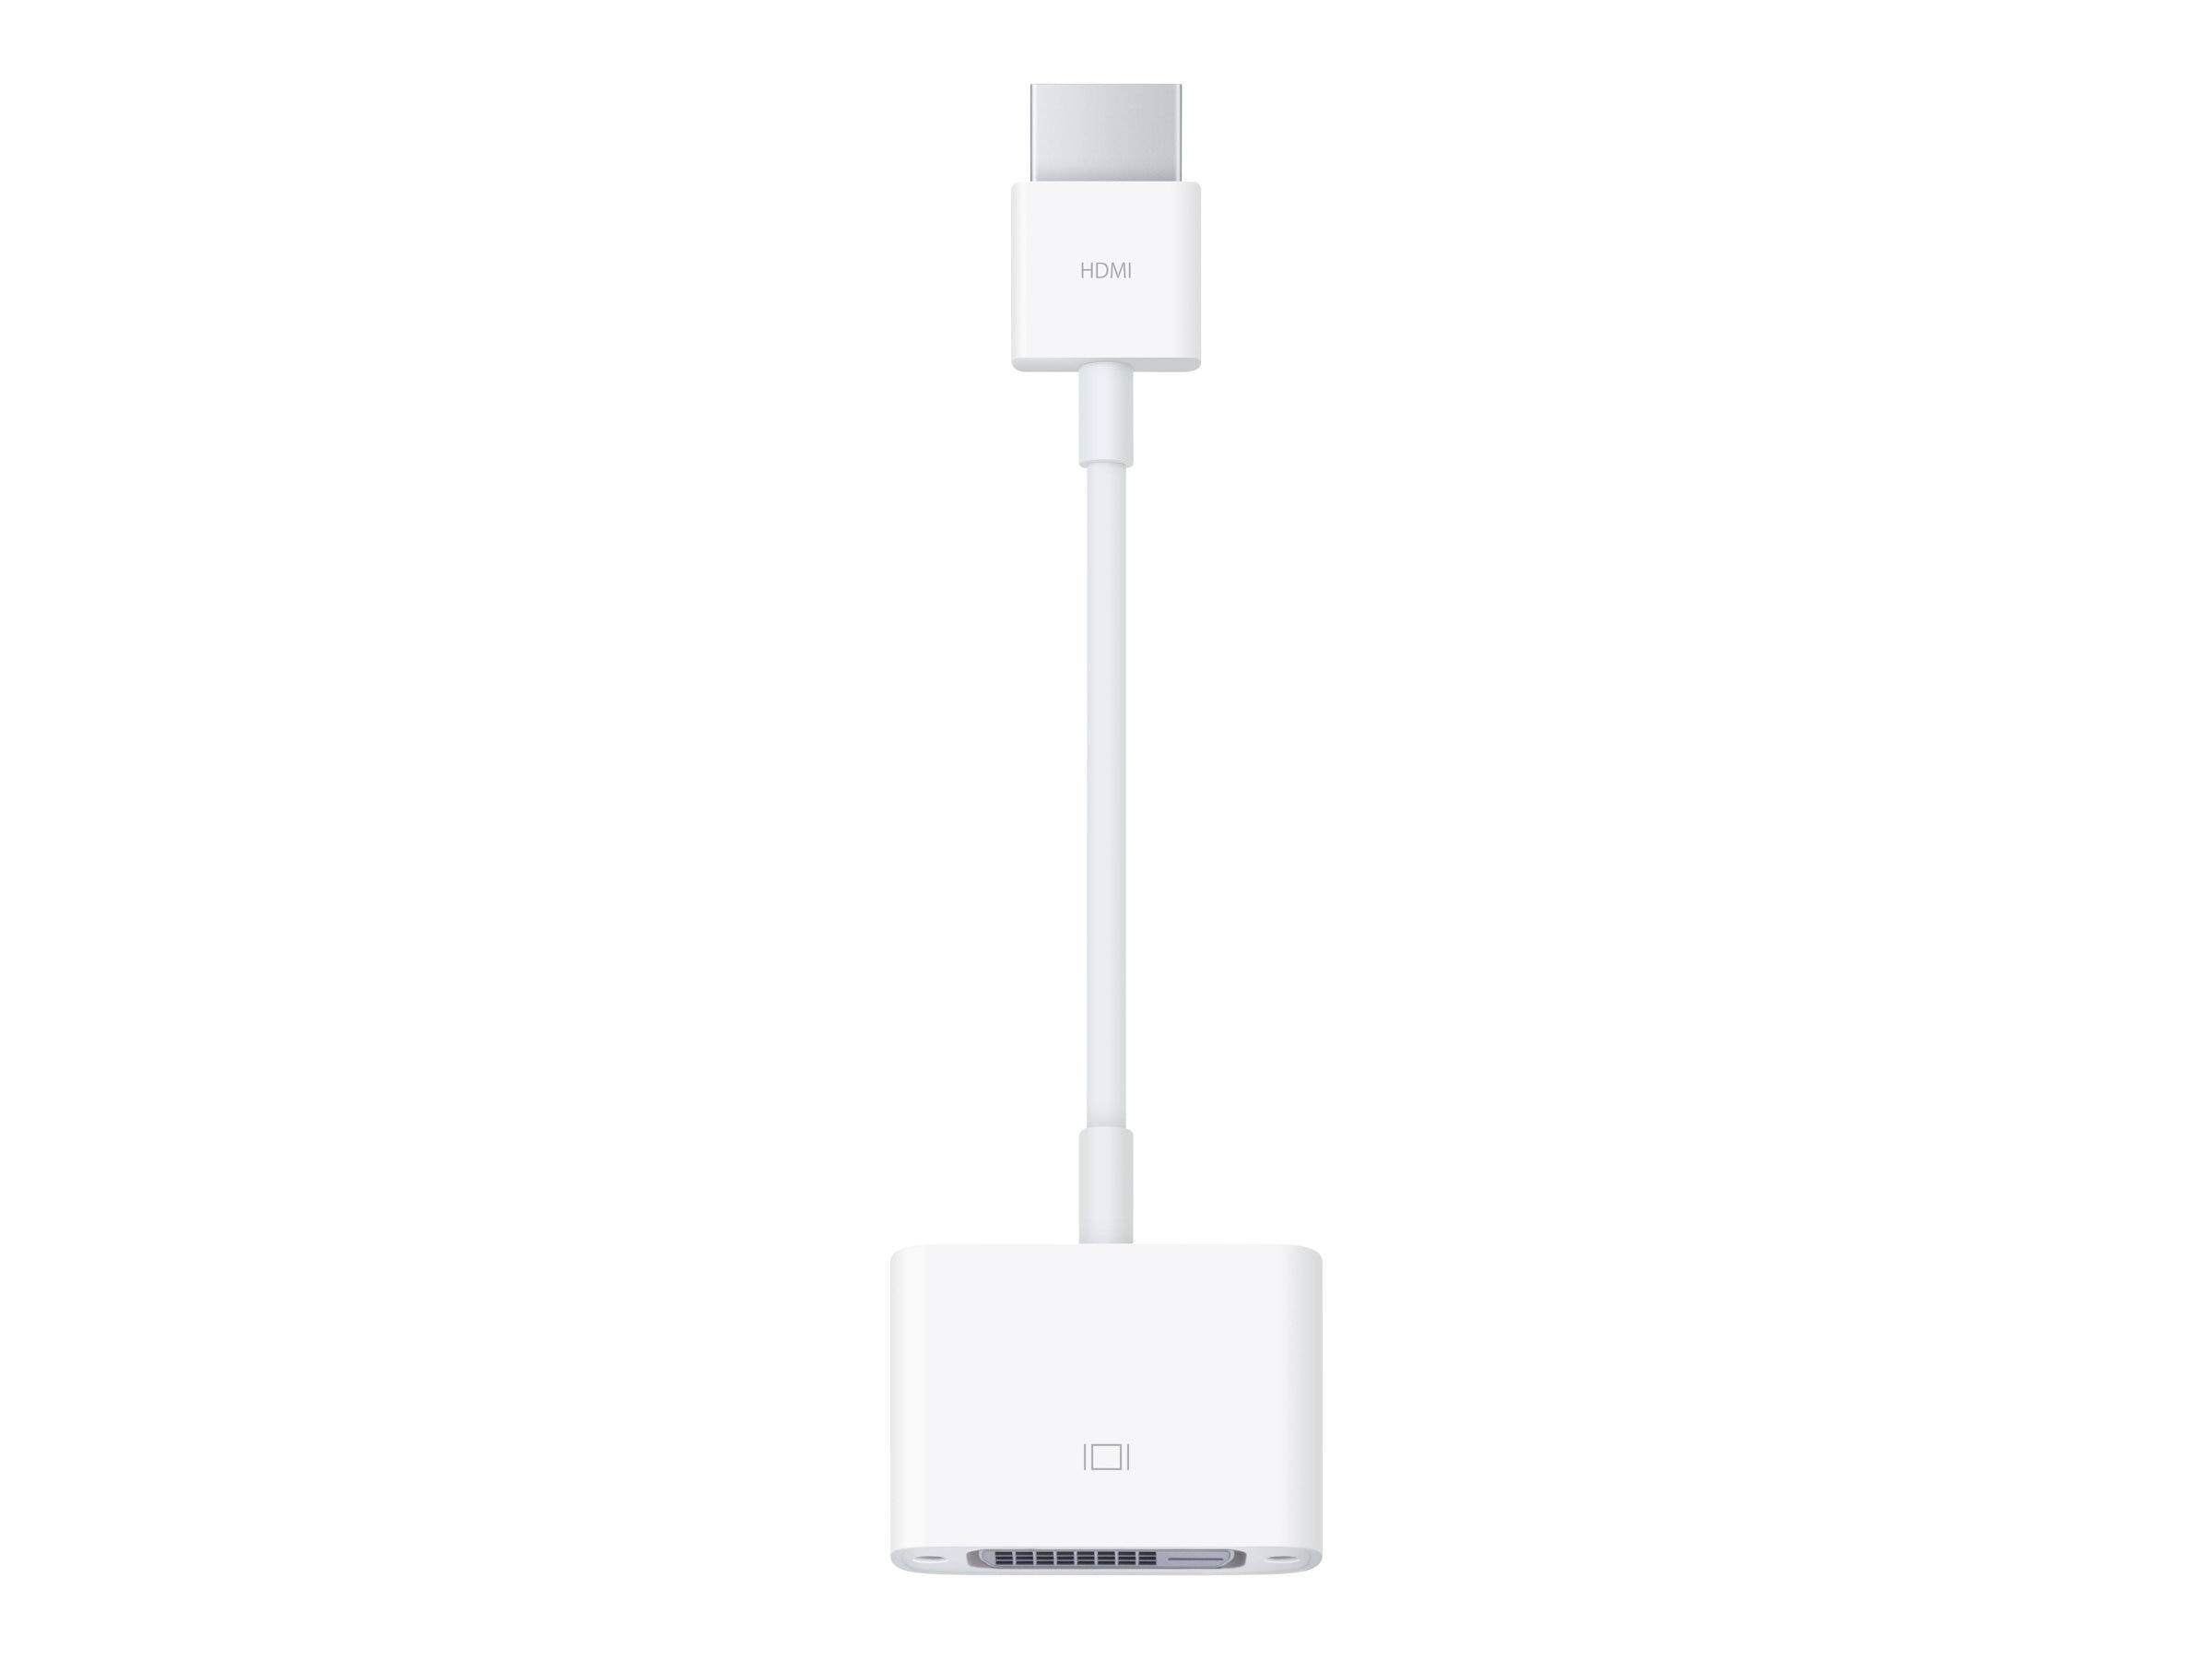 Apple HDMI to DVI Adapter, MJVU2AM/A, 17954943, Adapters & Port Converters